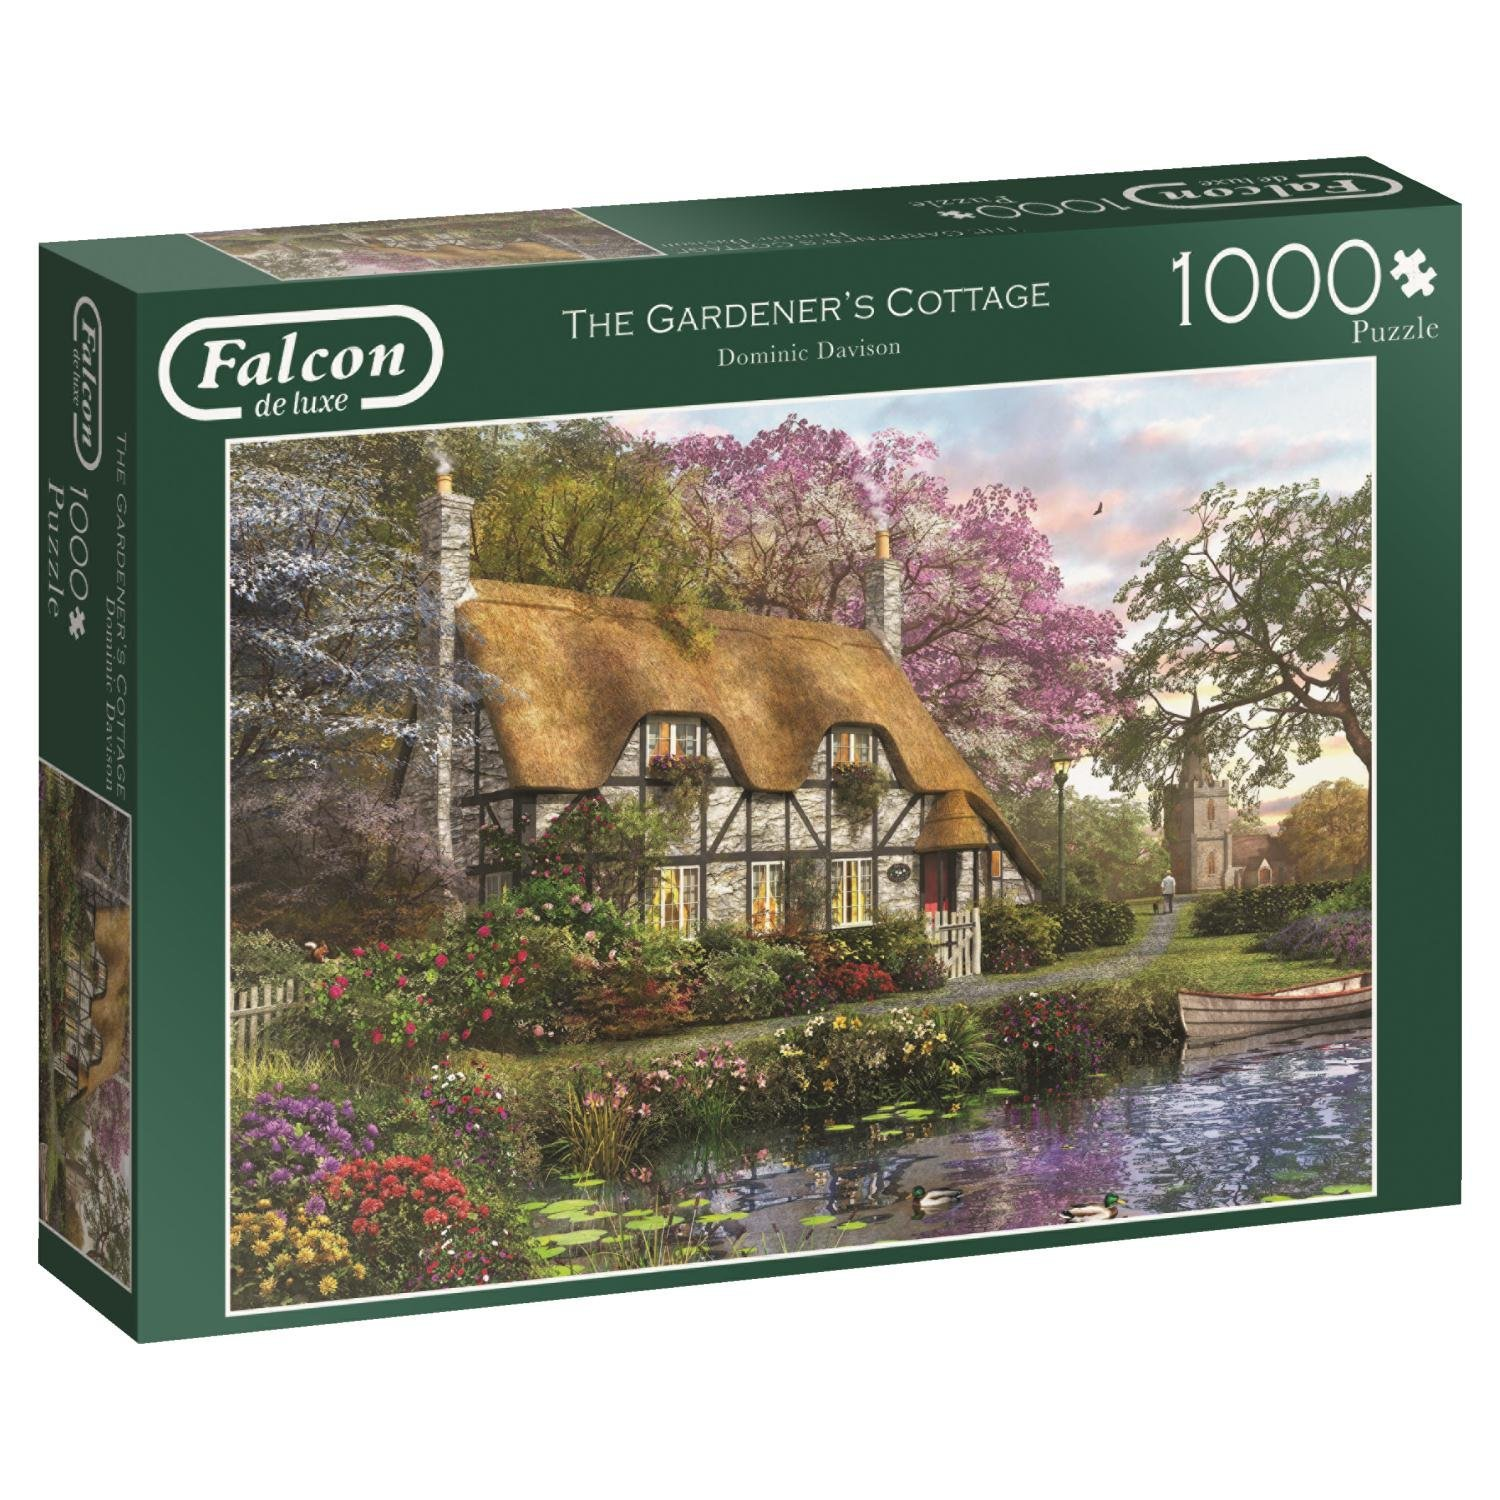 Falcon, Gardeners Cottage, 1000pc Jumbo Jigsaw